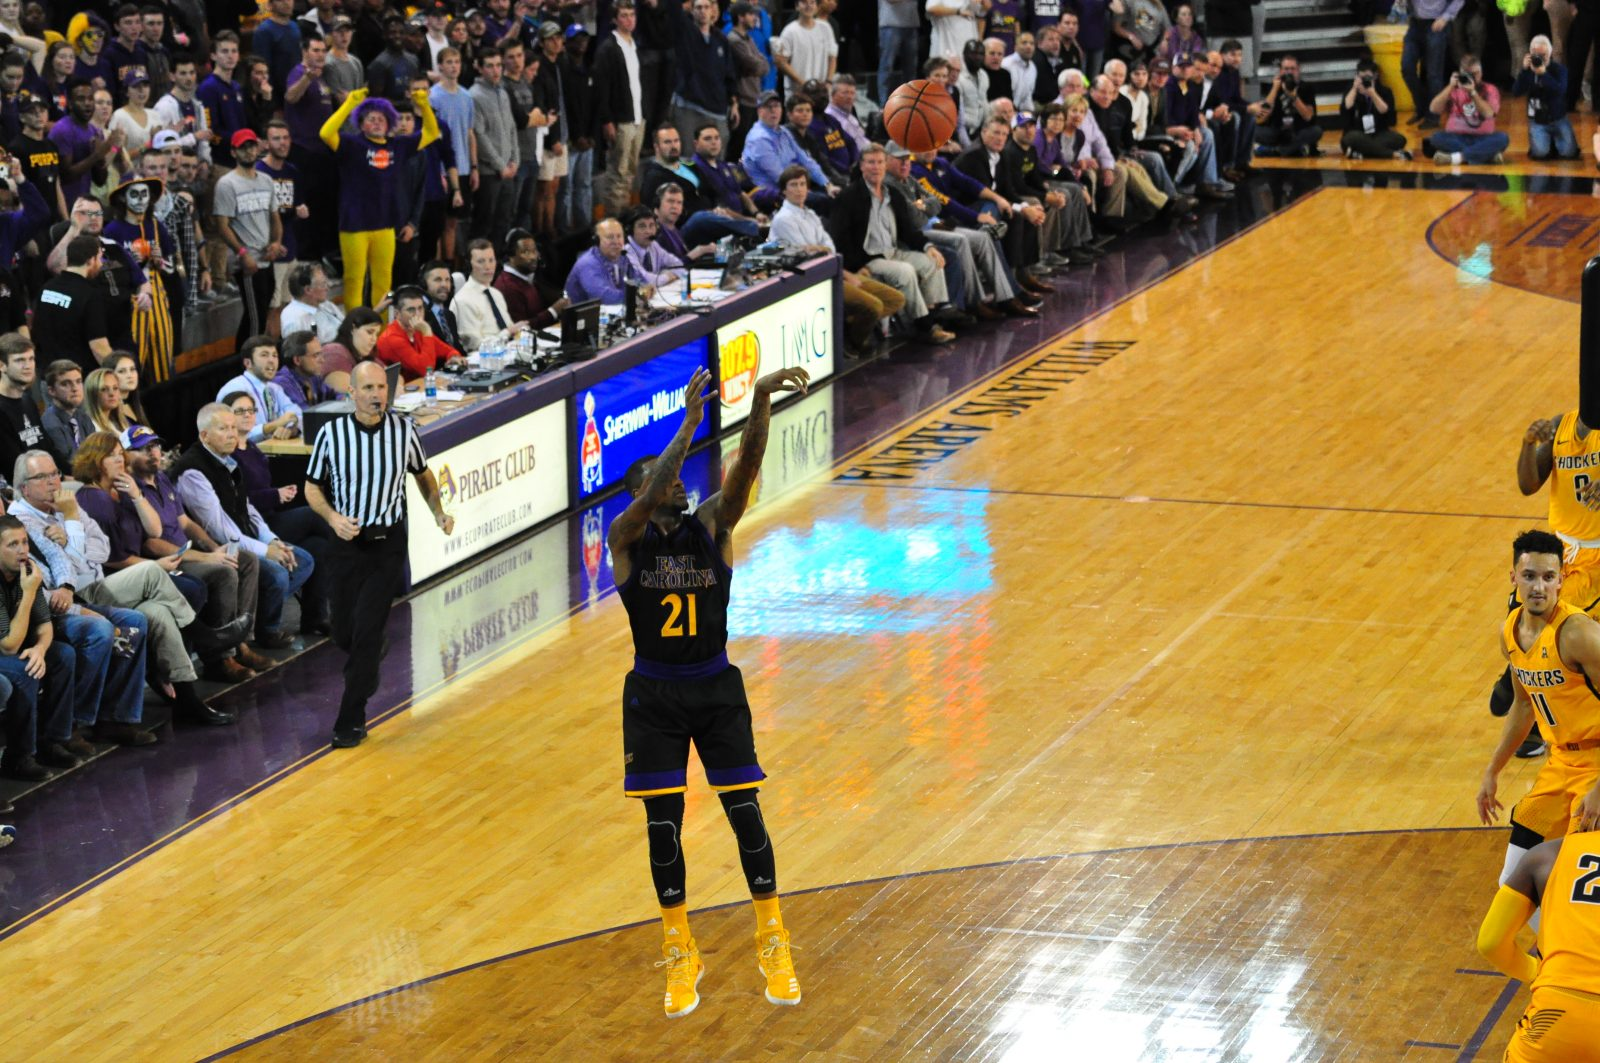 East Carolina fans look on hopefully as B.J. Tyson launches an open jumper against Wichita State.